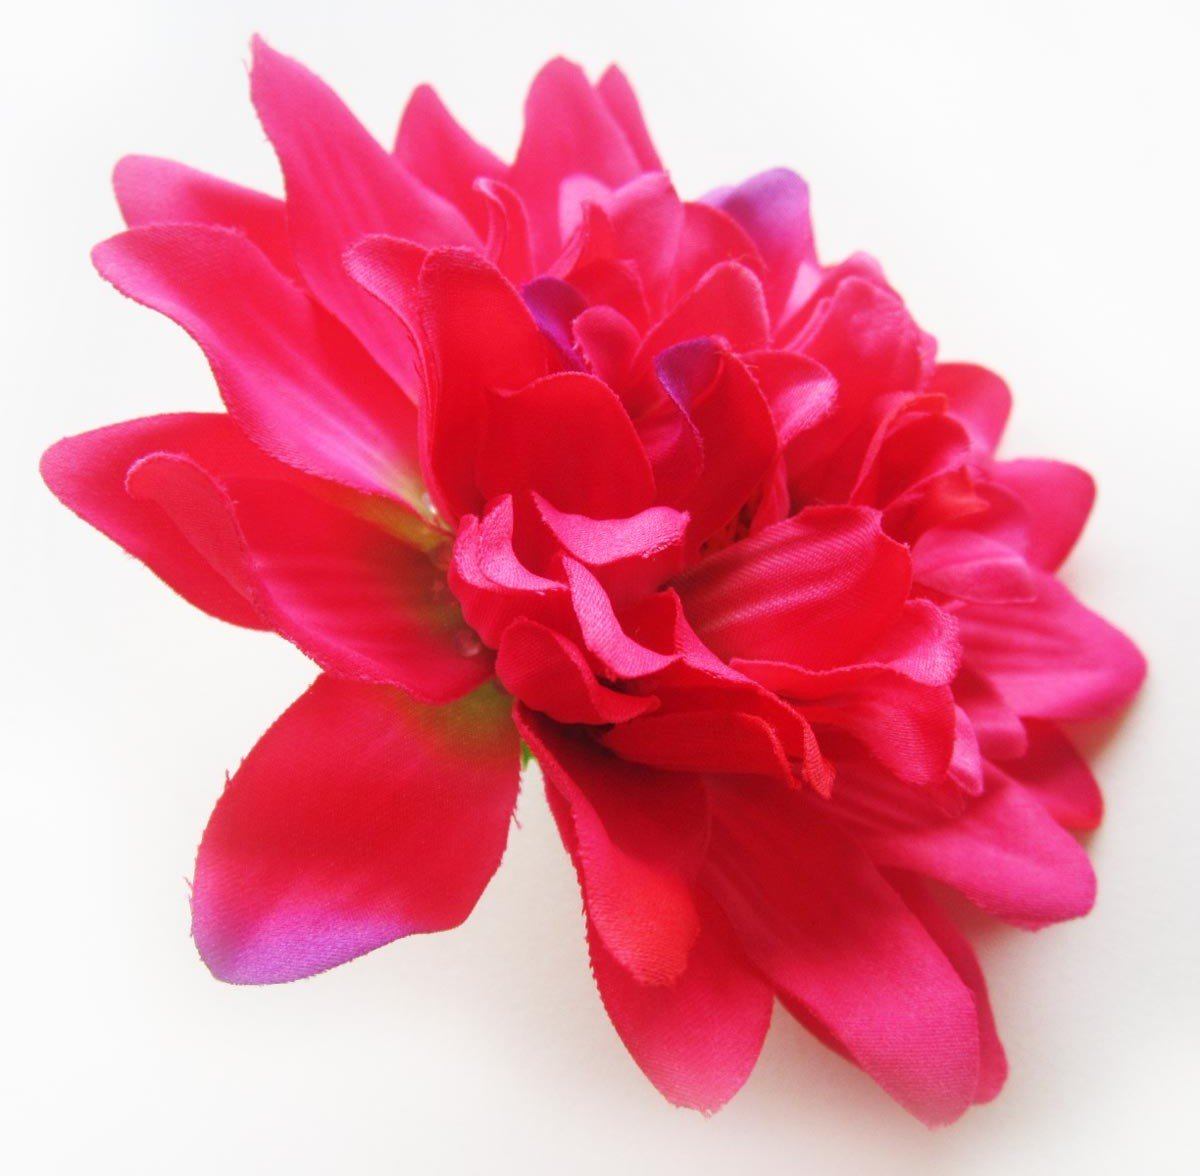 Amazon 4 Hot Pink Silk Dahlia Flower Heads 4 Artificial